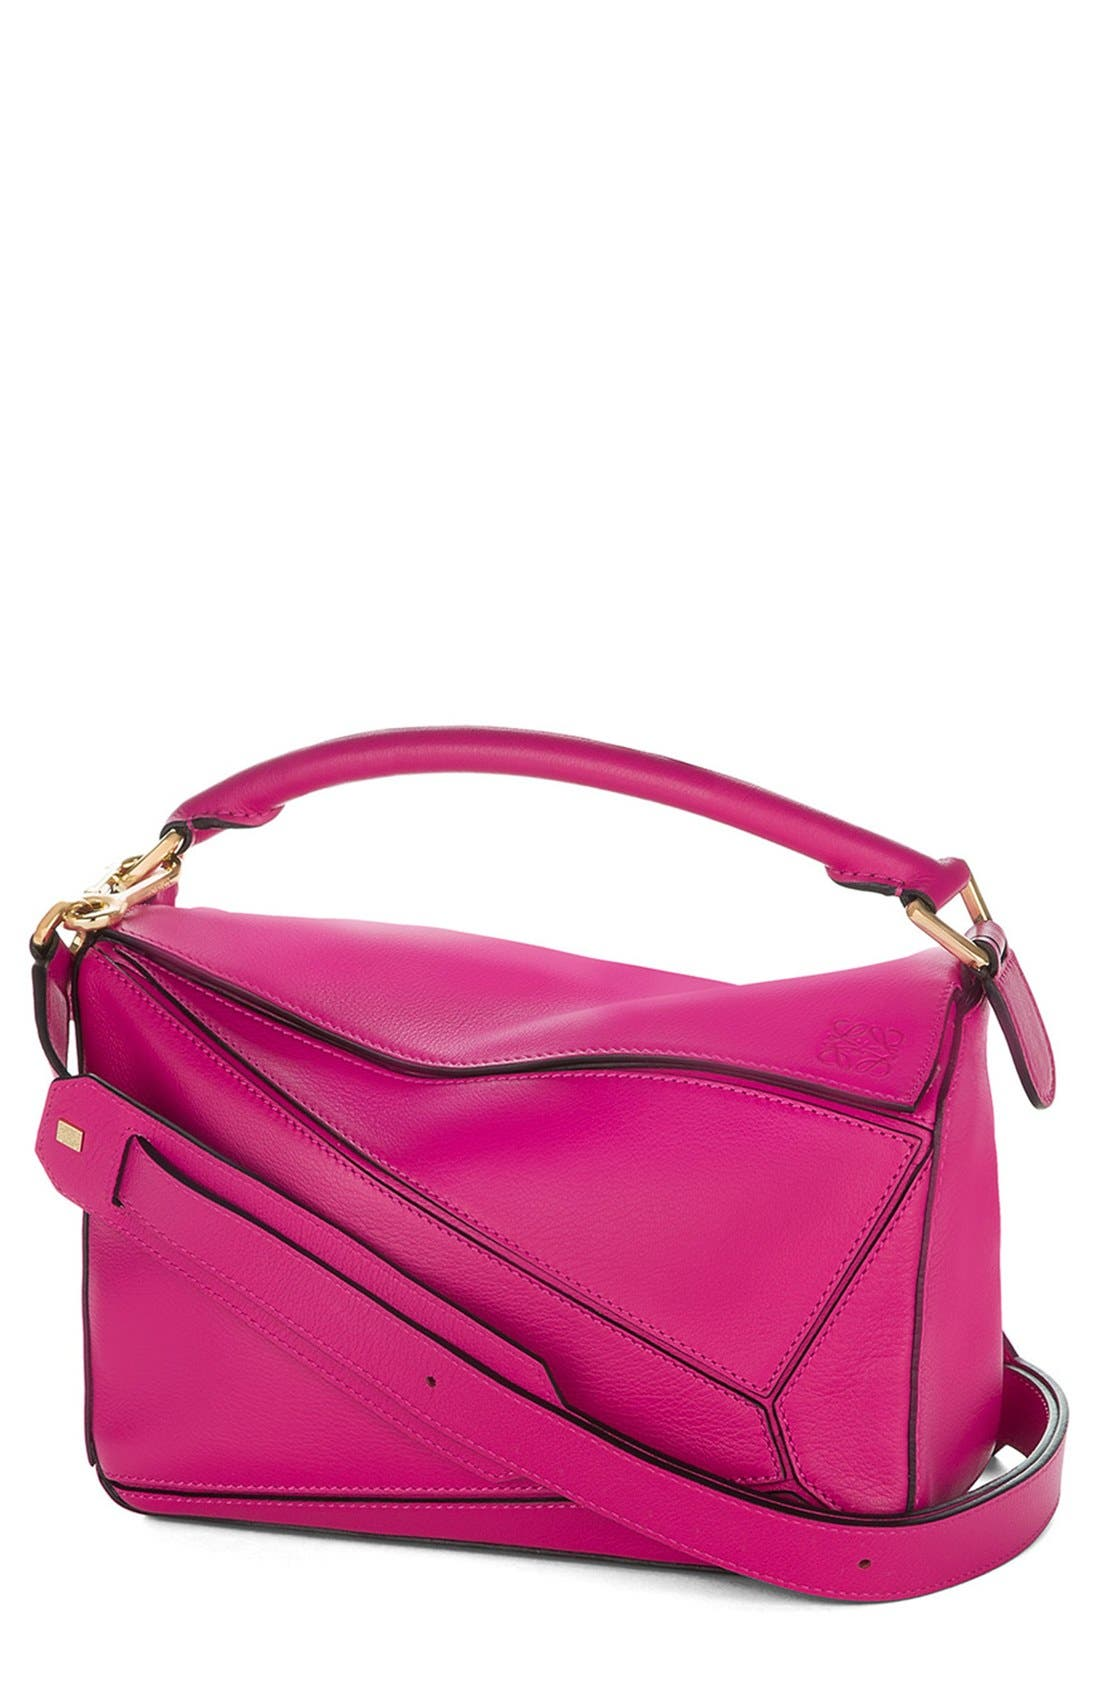 'Small Puzzle' Calfskin Leather Bag,                             Main thumbnail 9, color,